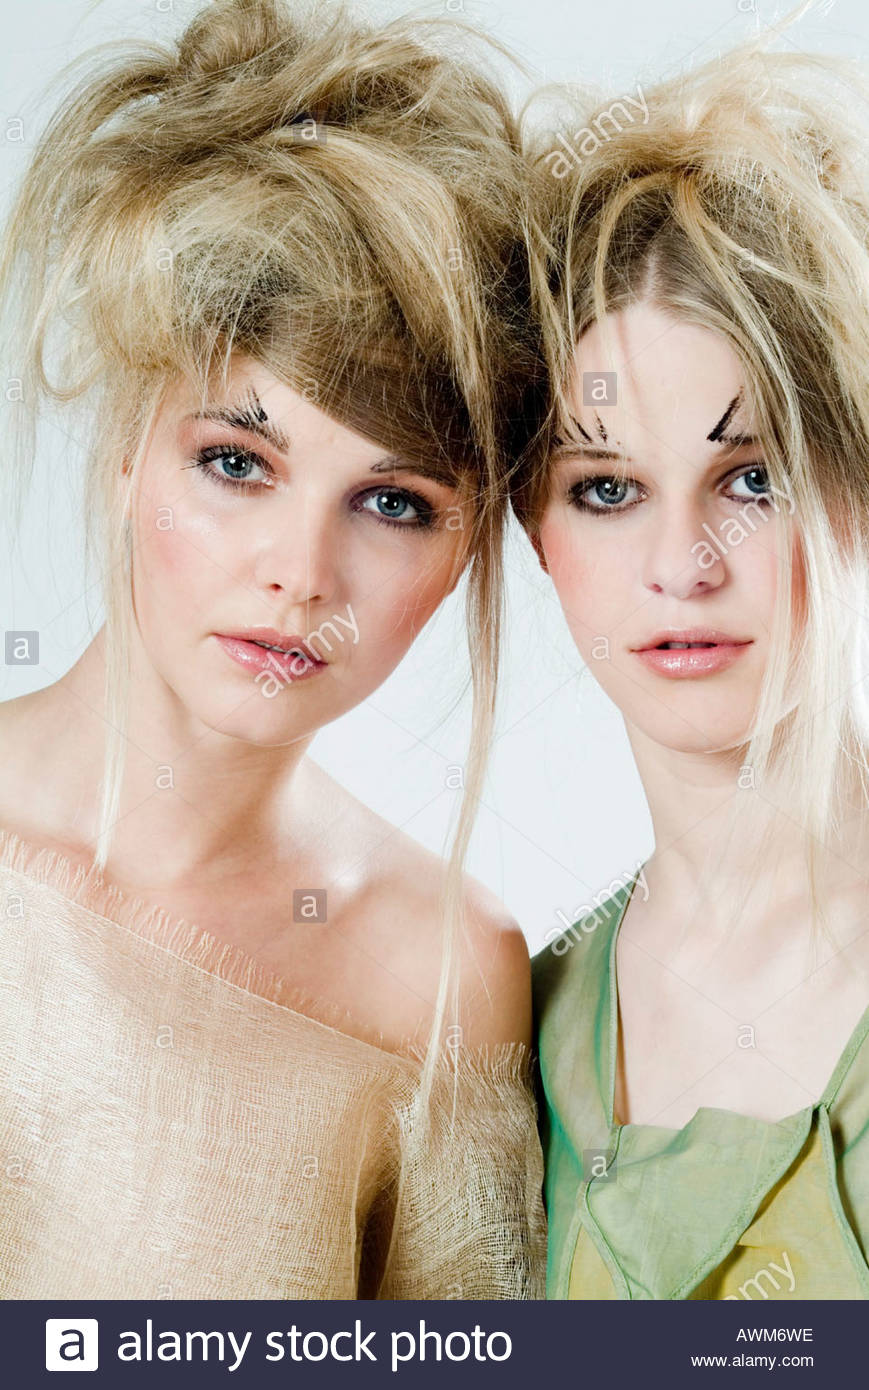 Frisur Blond Frauen Mit Stylischer Frisur Stock Photo 9491741 Alamy